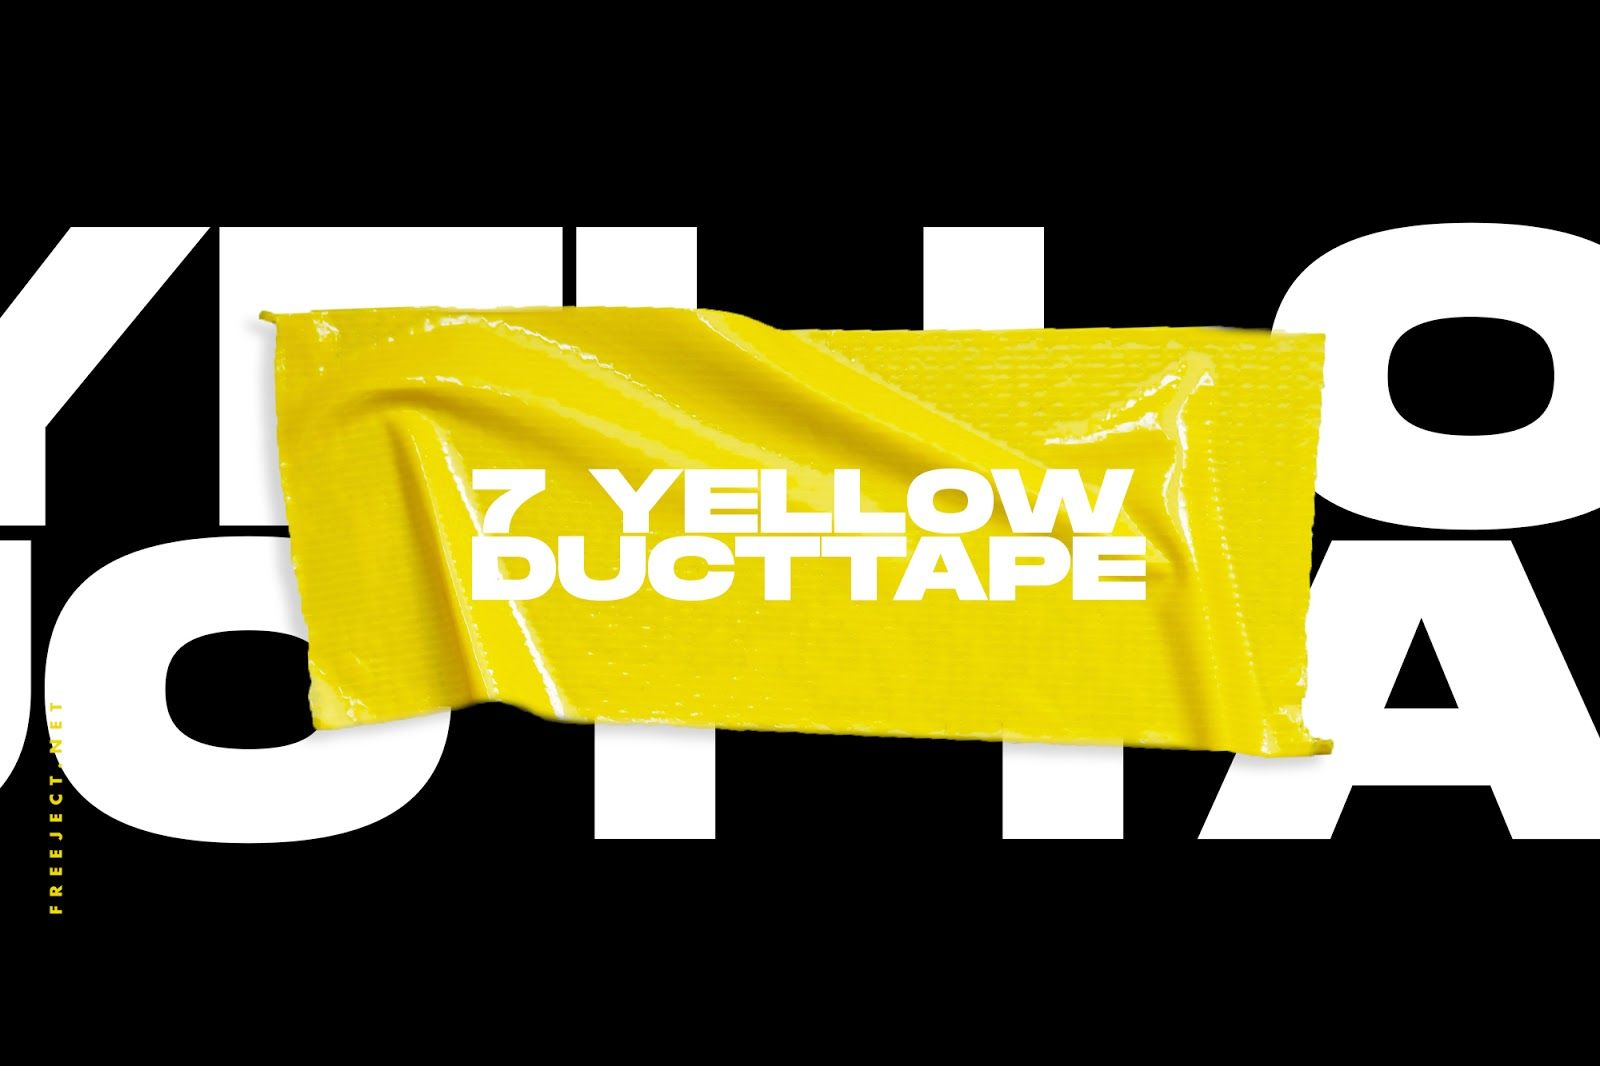 Free Download Yellow Duct Glued Tape Png Free Graphic Design Duct Tape Free Download Photoshop